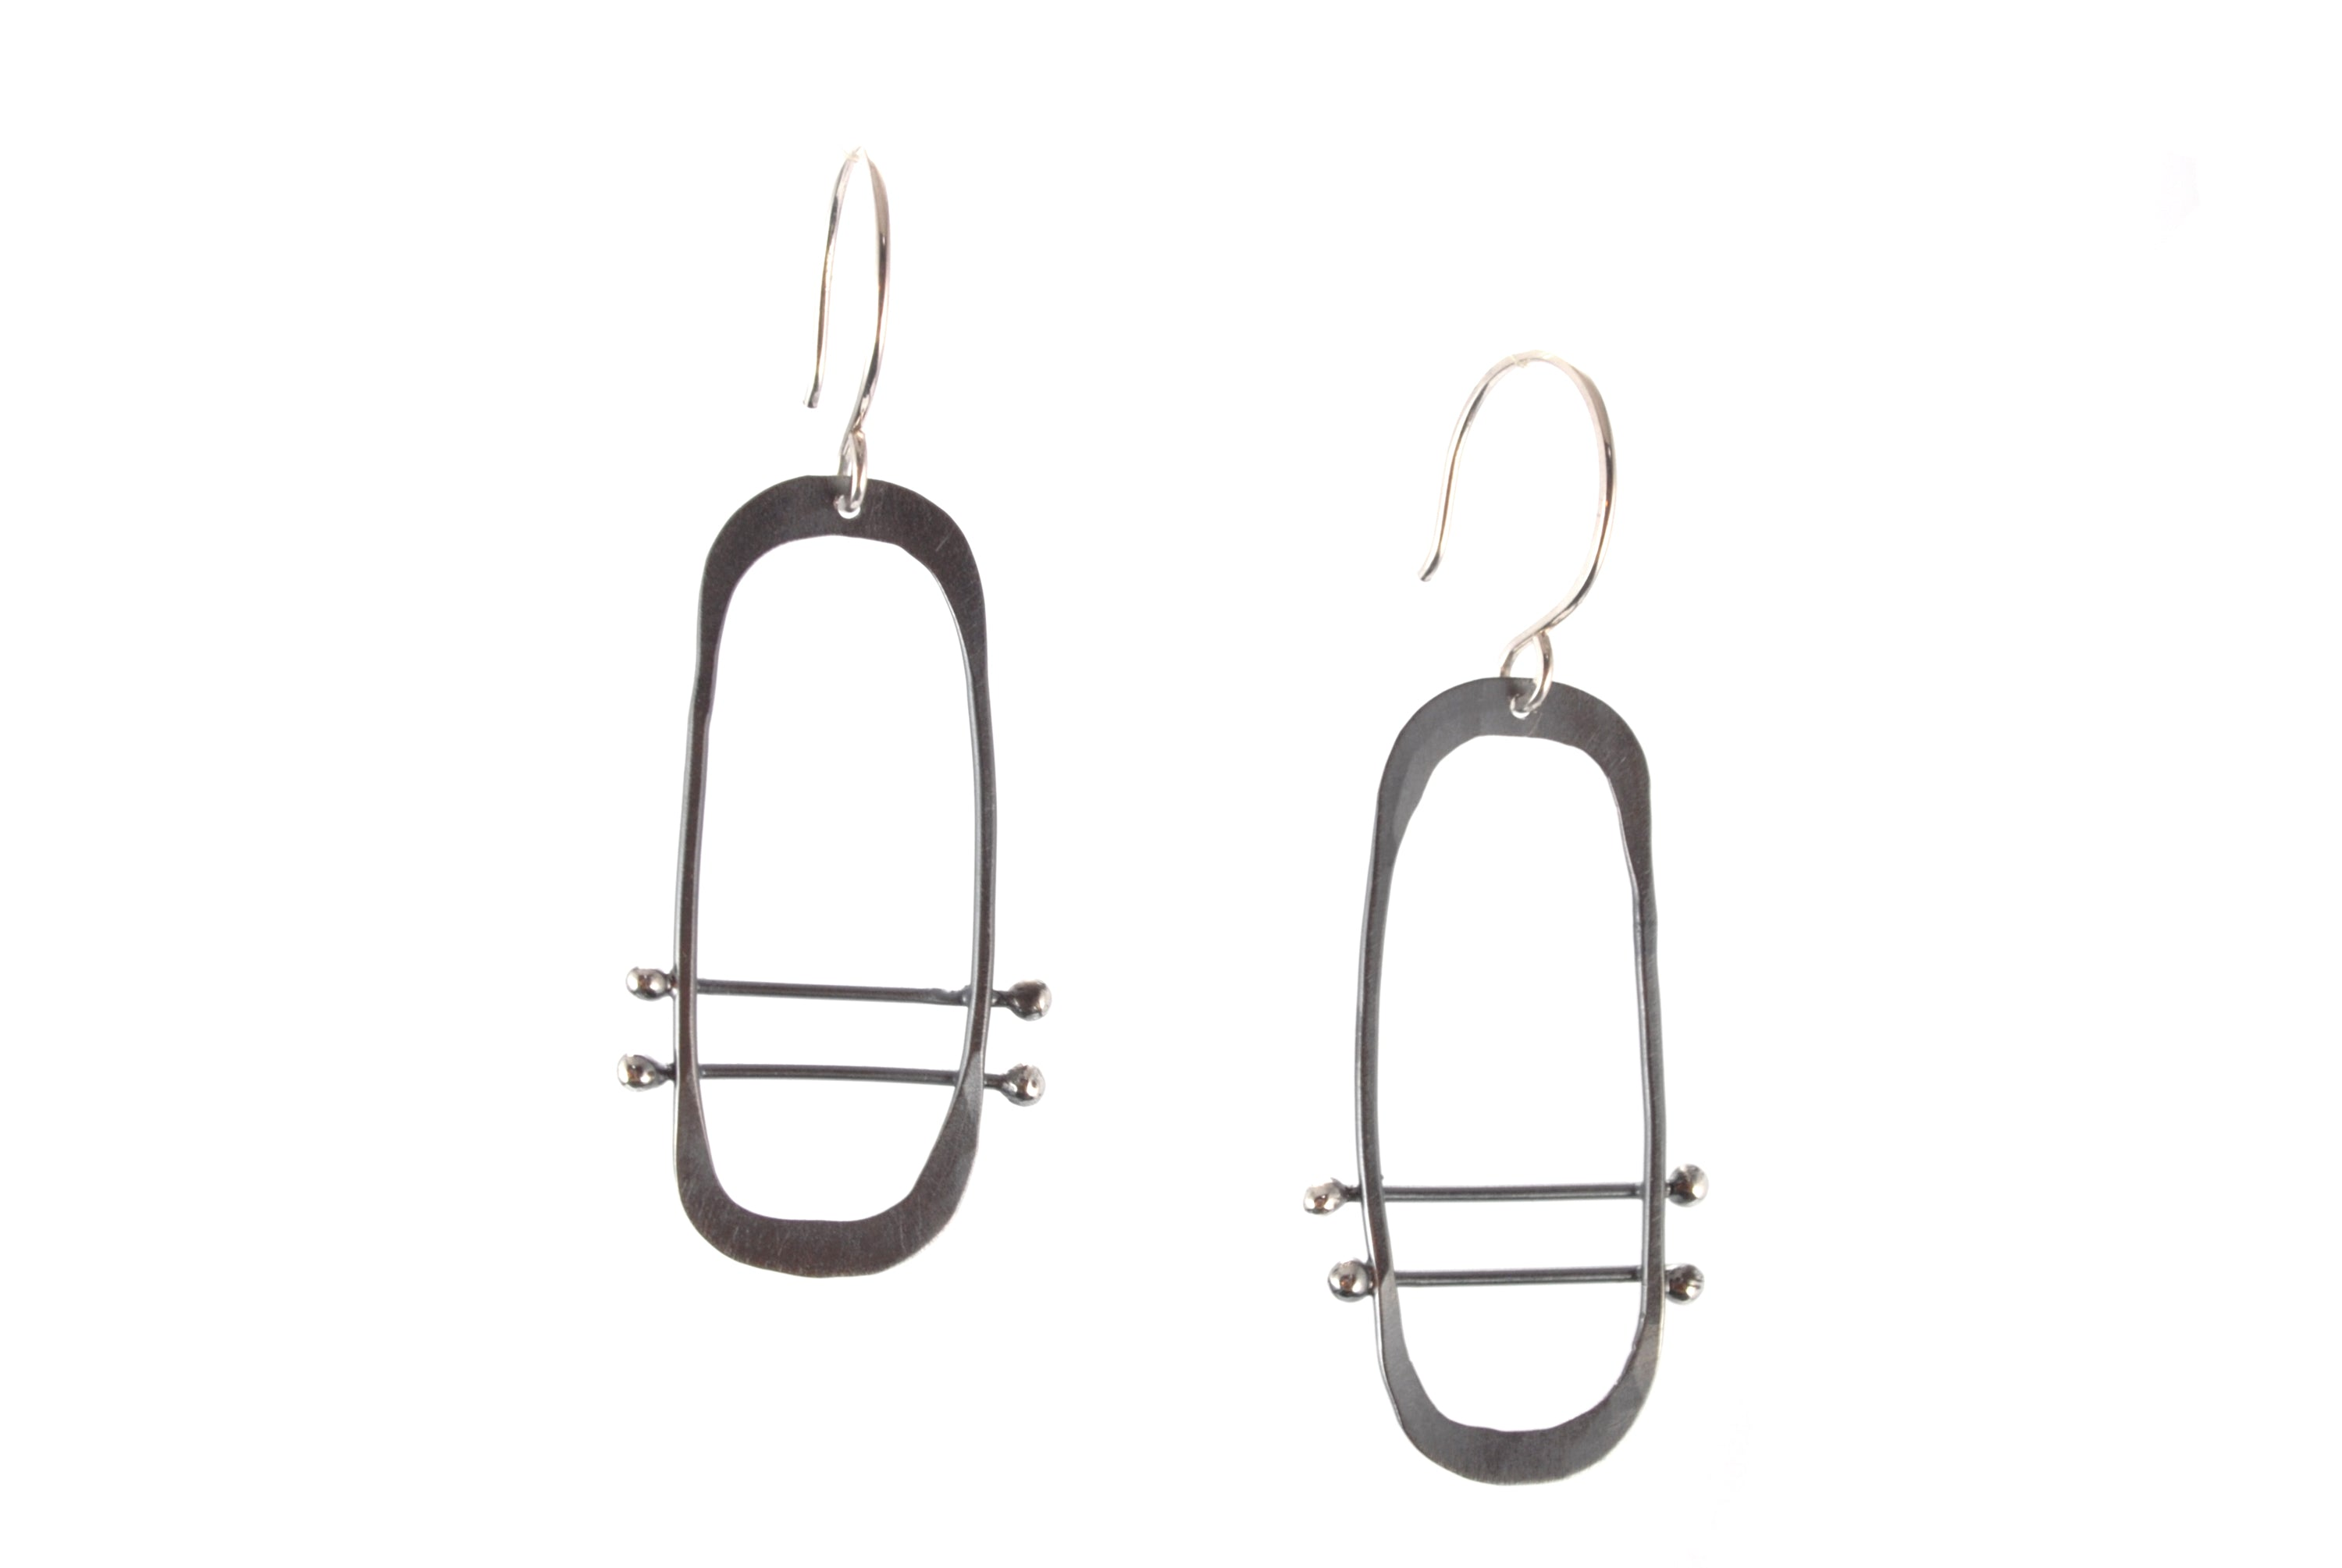 Oxidized Silver Oval Earrings